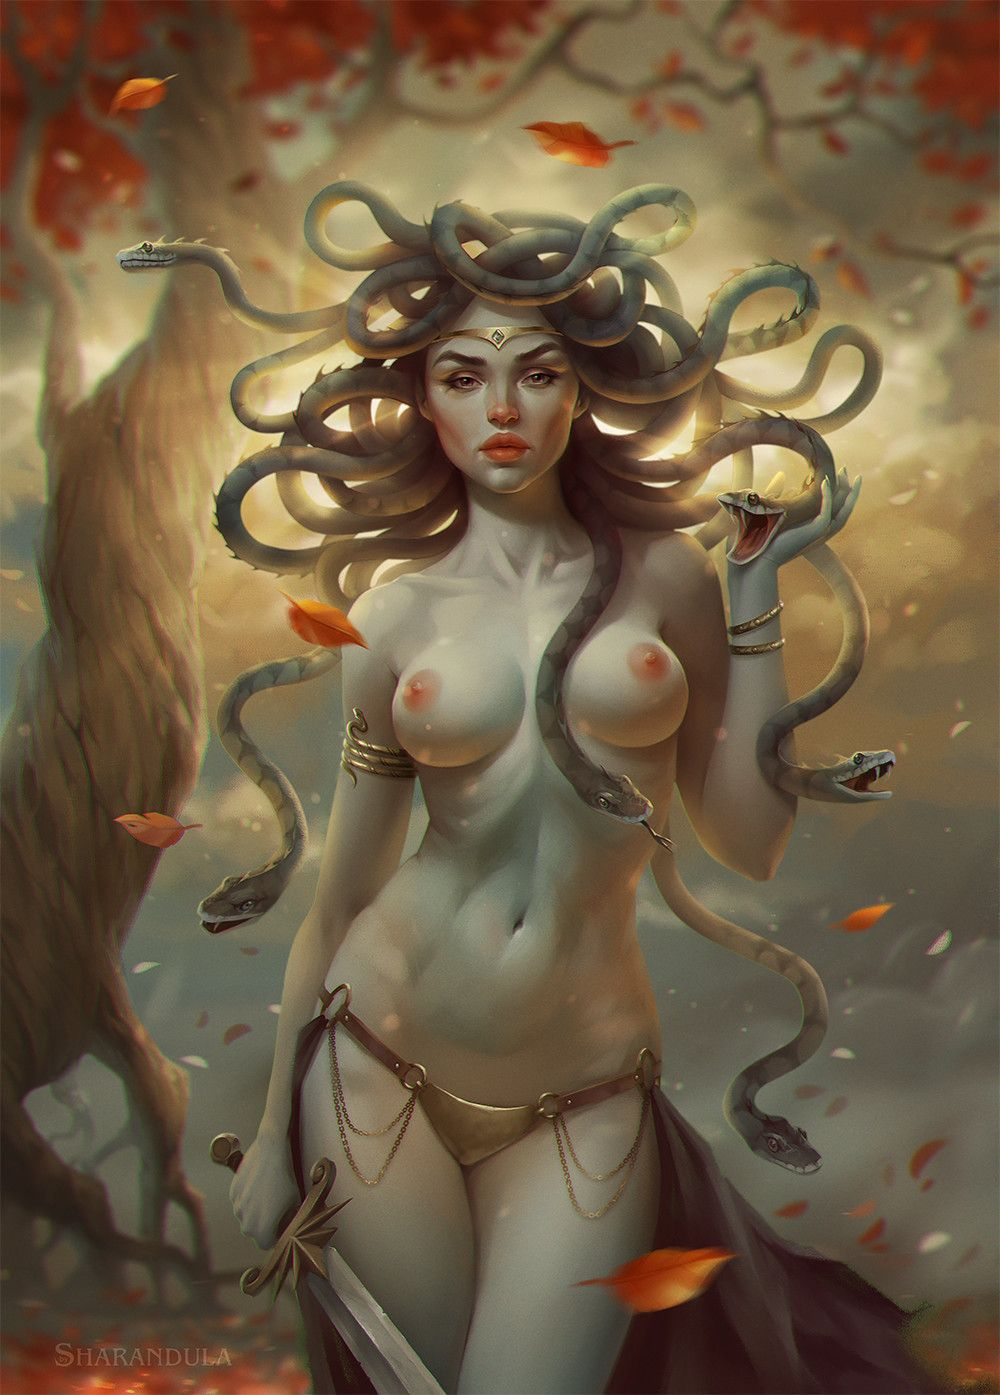 Nude fantasy artwork beautiful